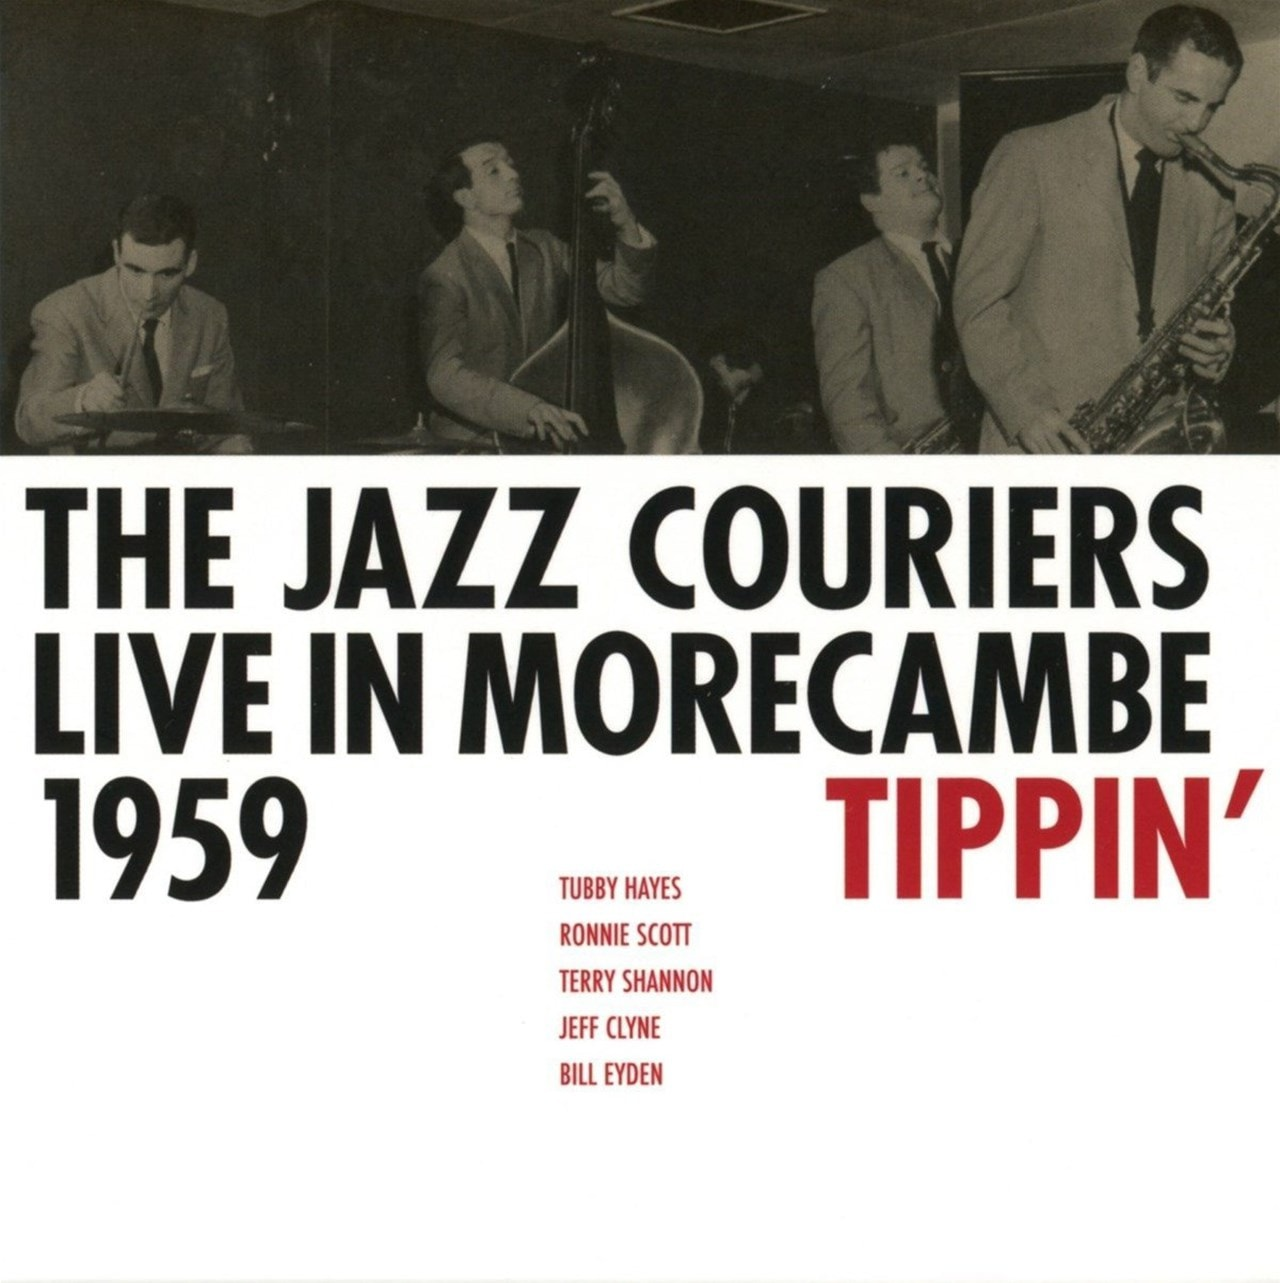 Tippin': Live in Morecambe 1959 - 1